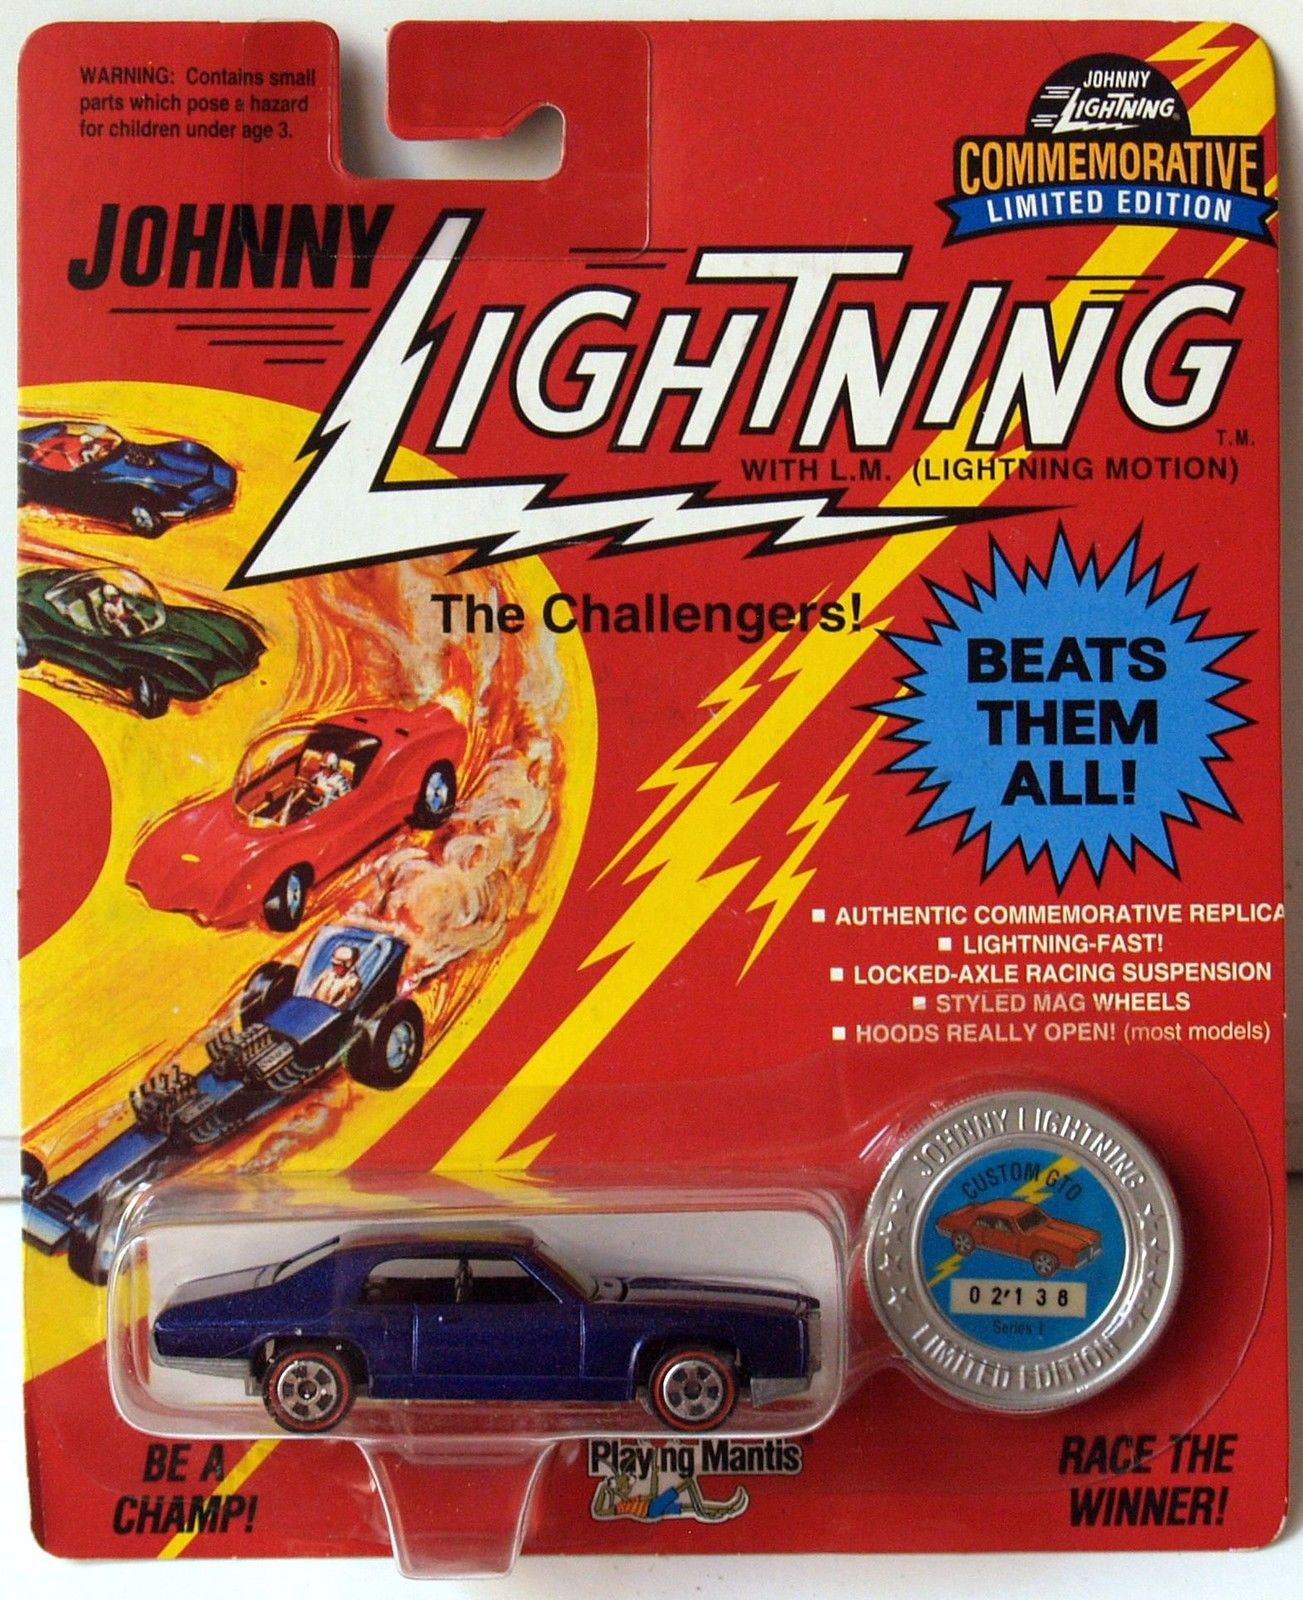 JOHNNY LIGHTNING COMMEMORATIVE - DARK PURPLE CUSTOM GTO - SERIES I